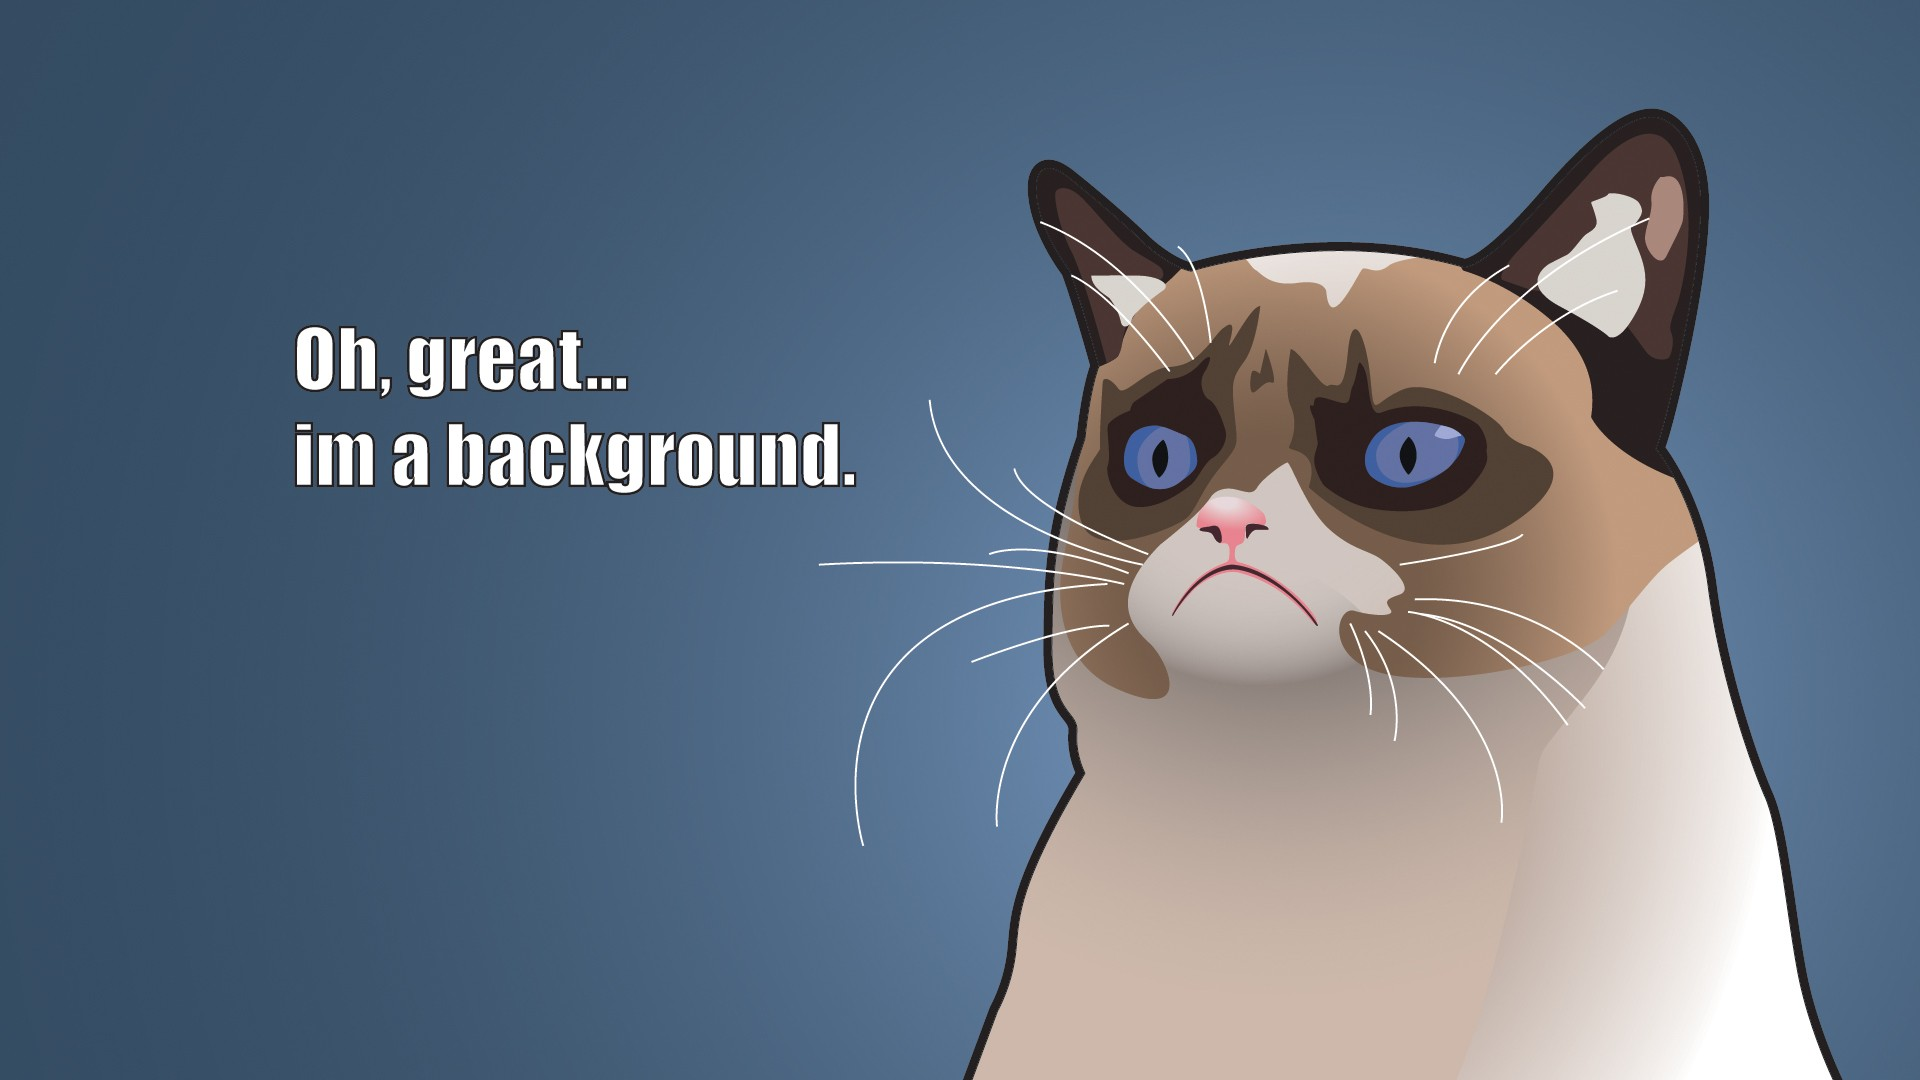 Grumpy Cat Wallpaper Download Free Stunning Hd Backgrounds For